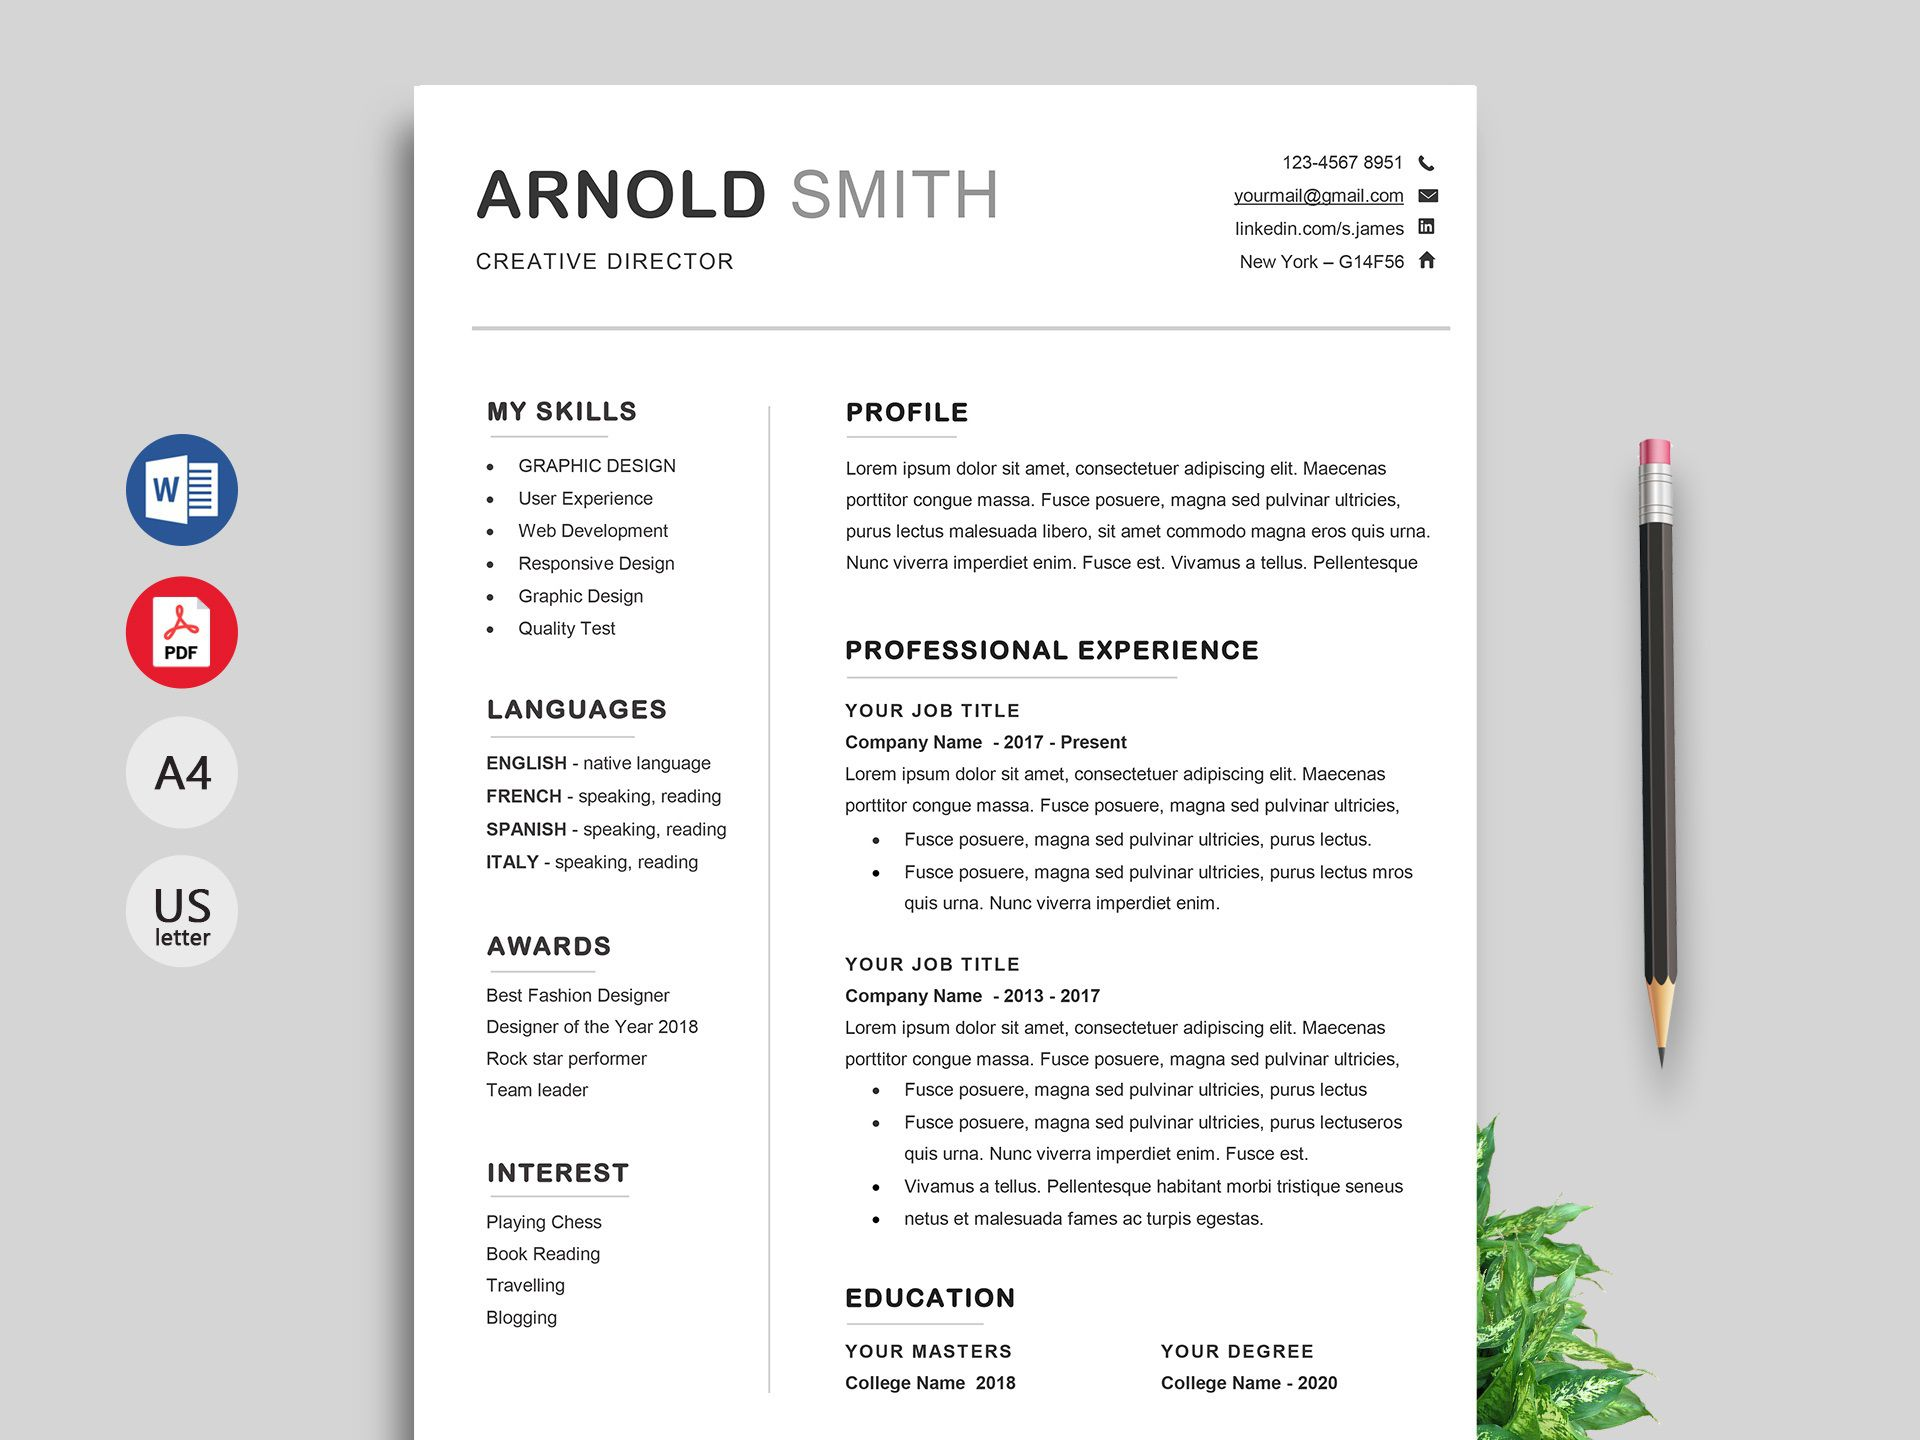 002 Formidable Resume Template Free Word Sample  Download Document 2020 For FresherFull